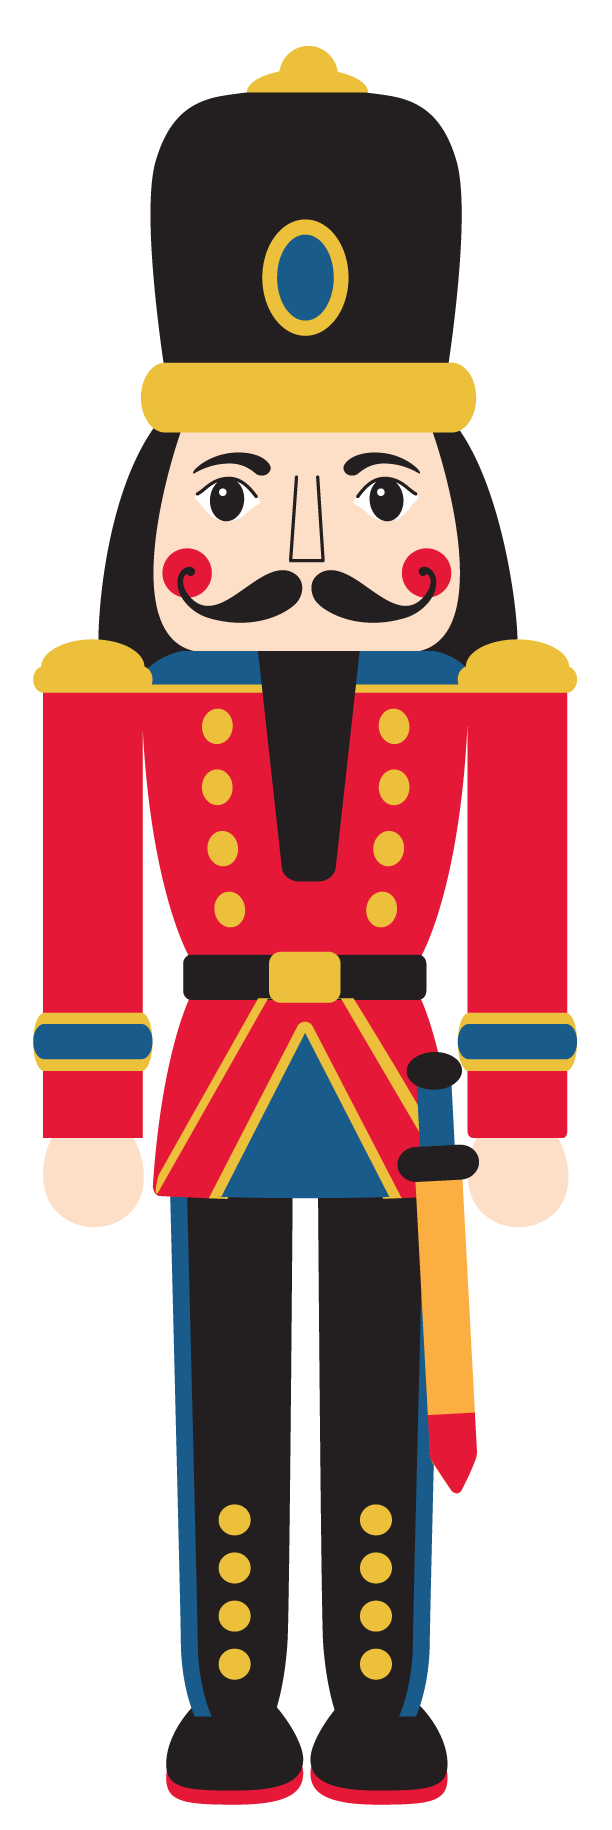 Ballet svg nutcracker. The community icon painting